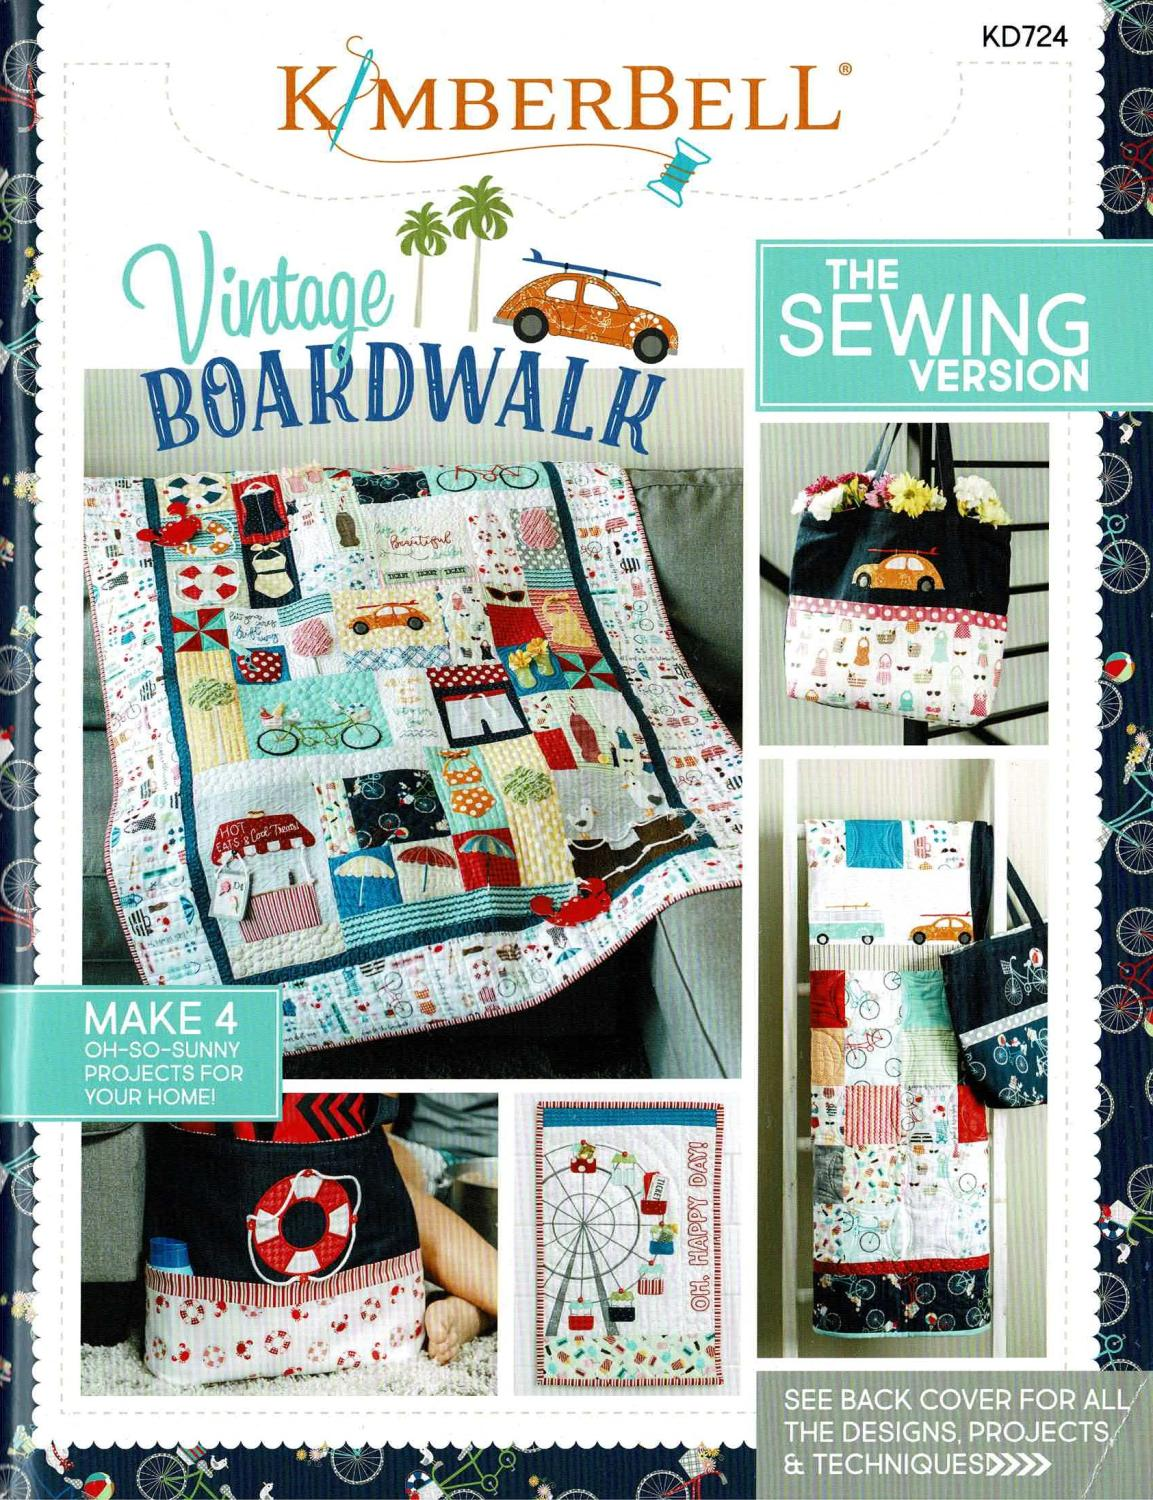 Kimberbell Vintage Boardwalk - Sewing Version